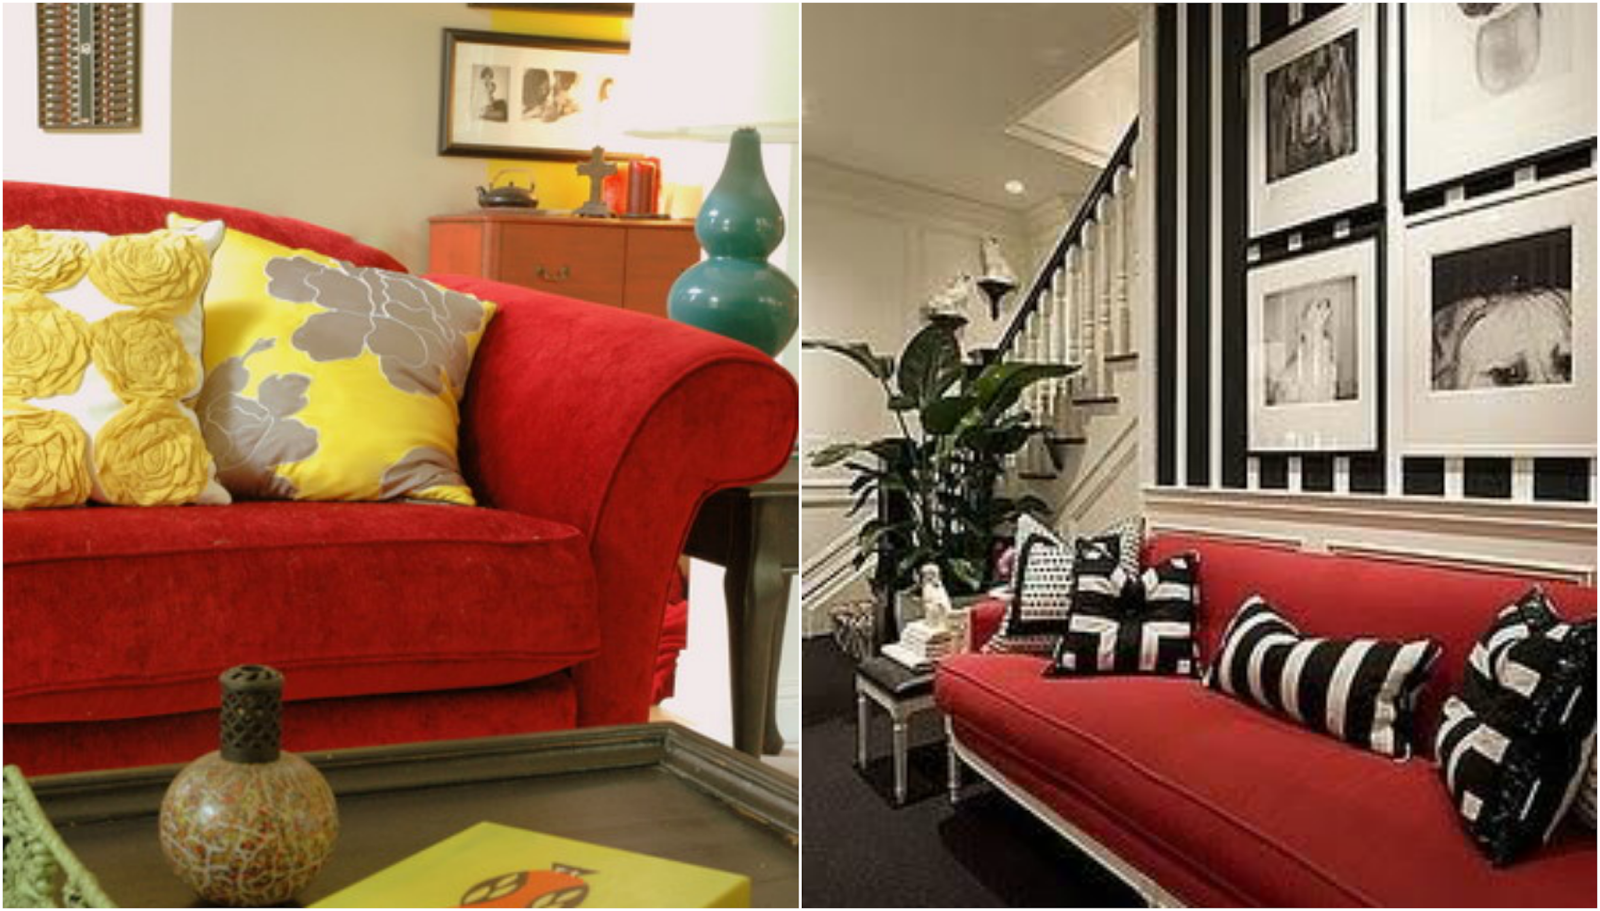 Decorating living room ideas with red couch home photos for Living room ideas red